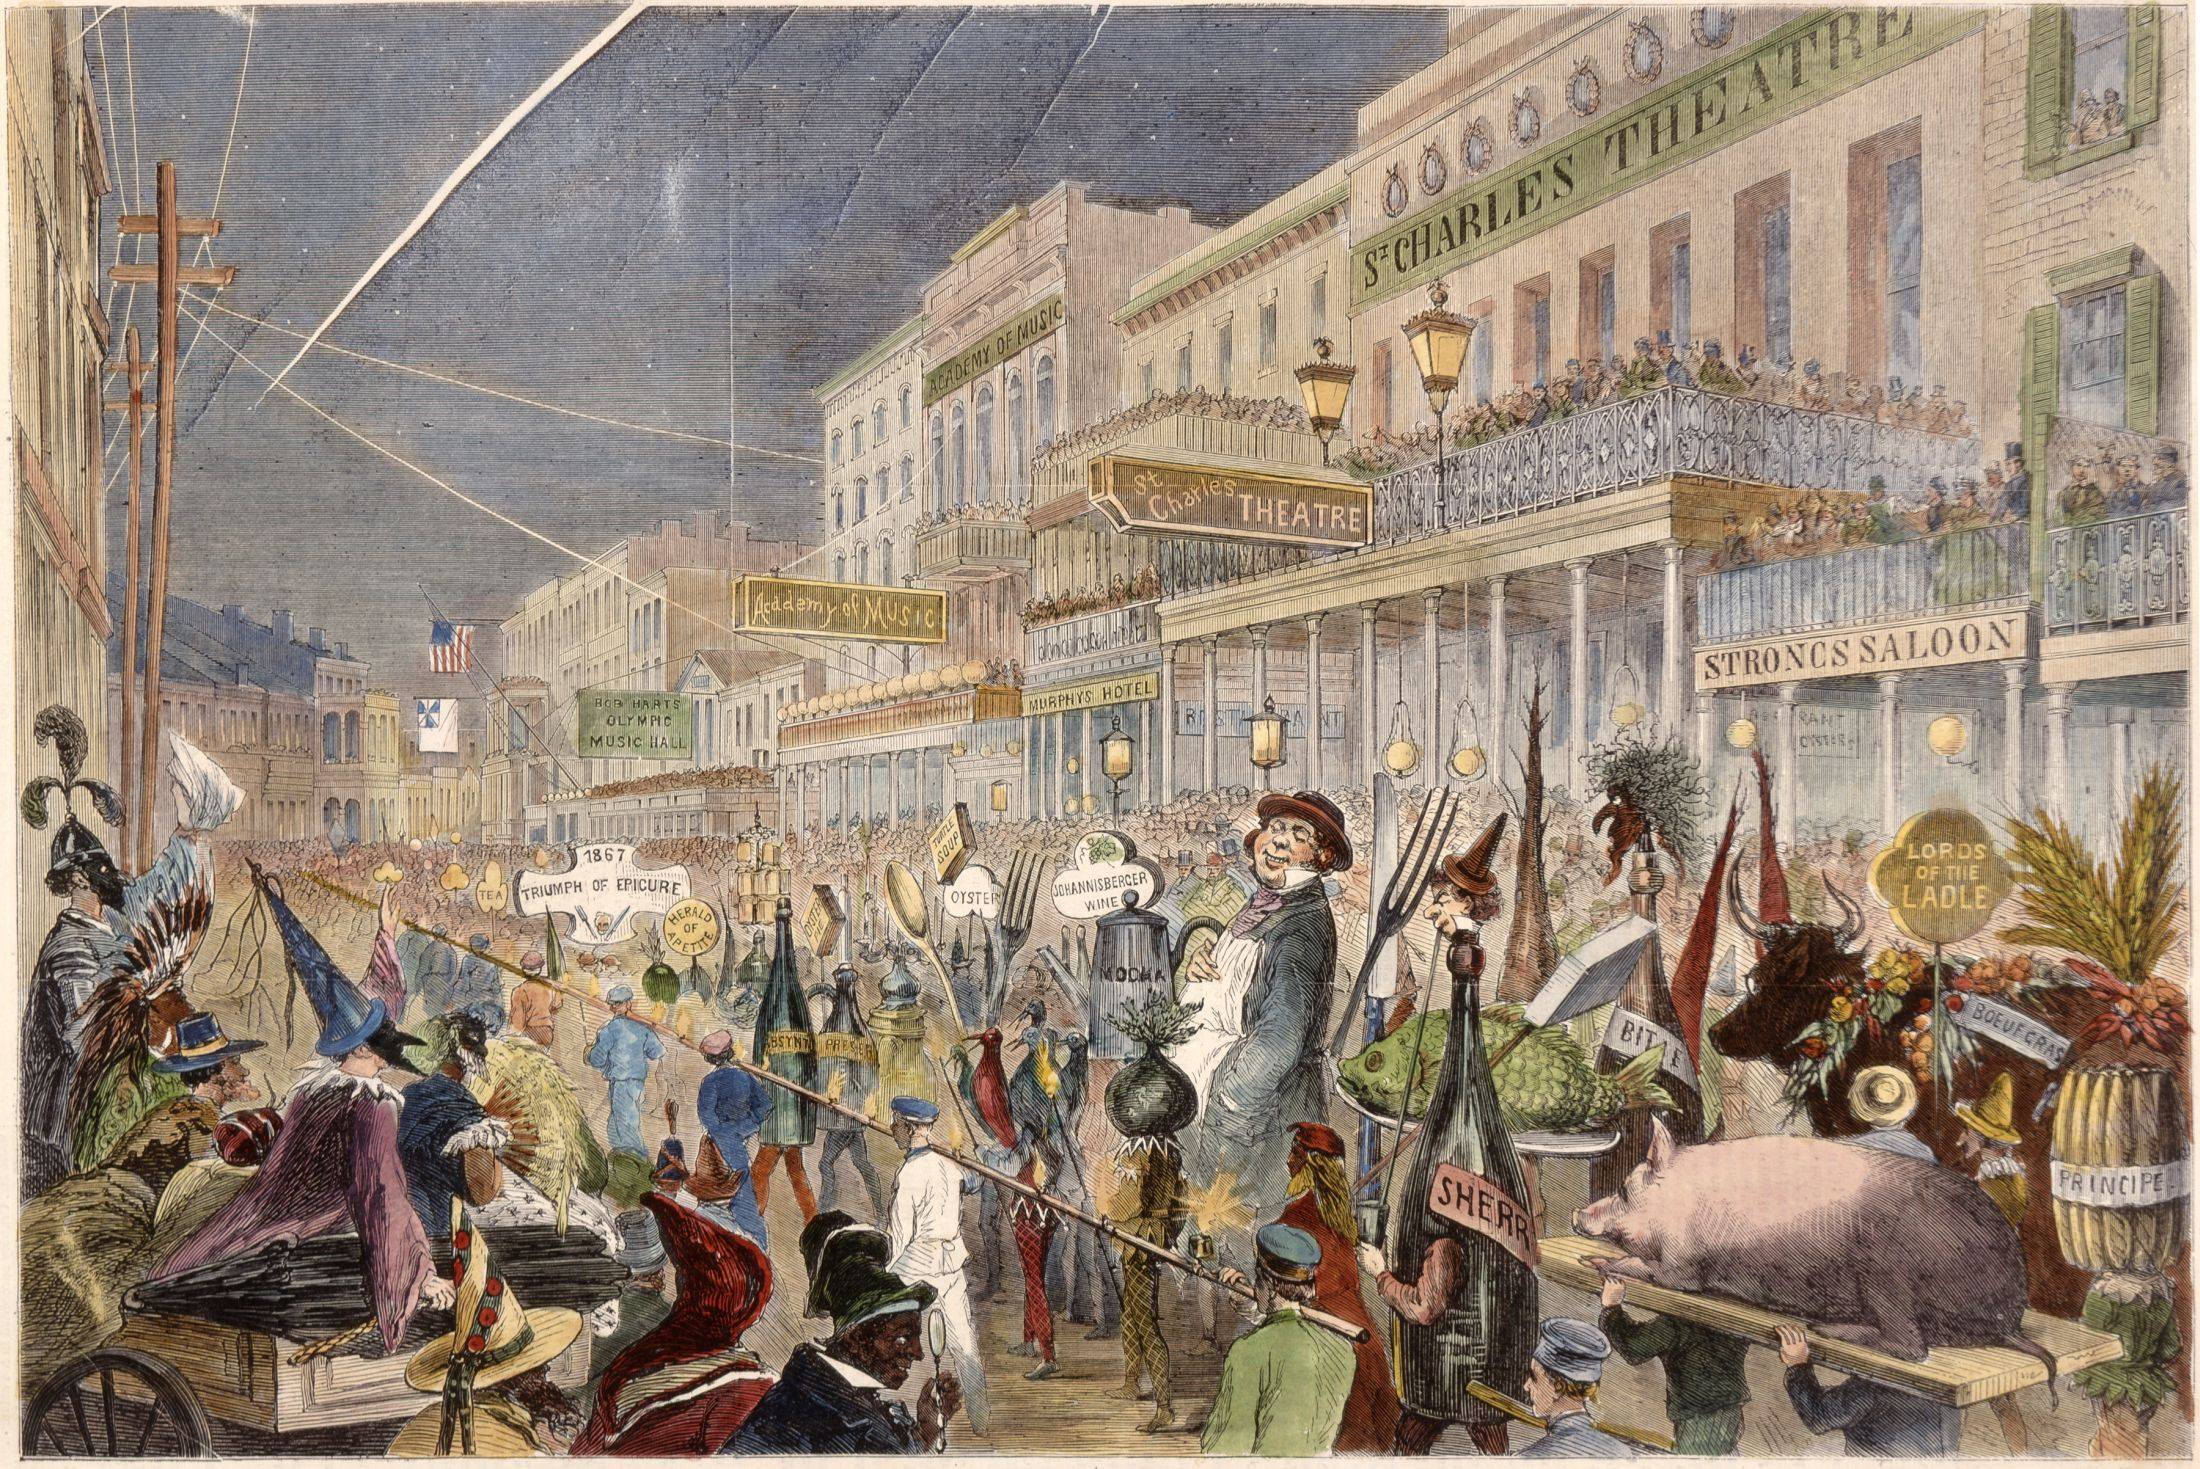 The History of New Orleans